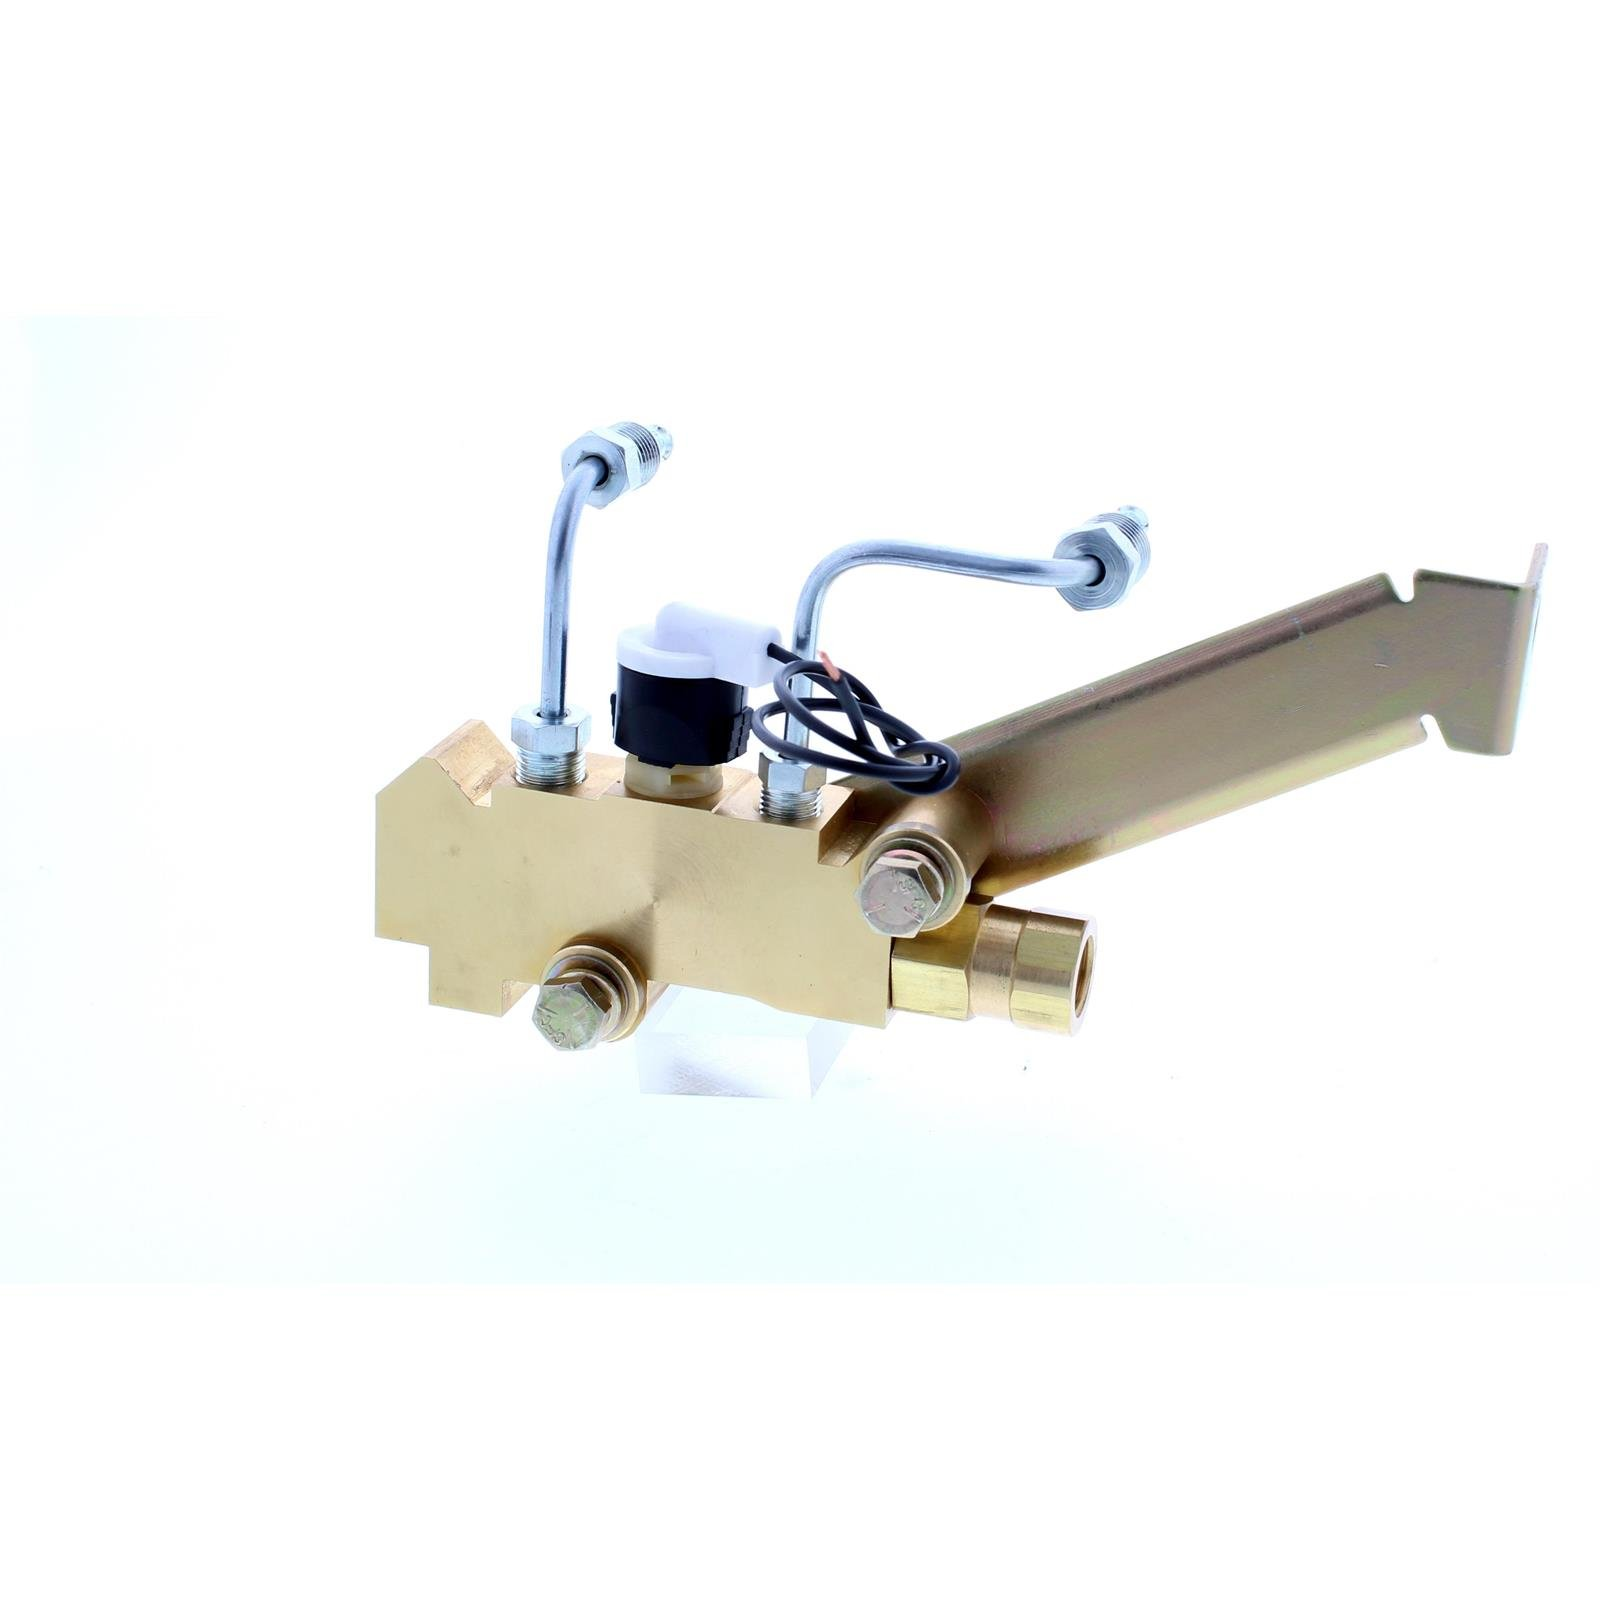 GM Disc/Disc Proportioning Valve for 1/2-20, 9/16-18 Outlets by Speedway Motors